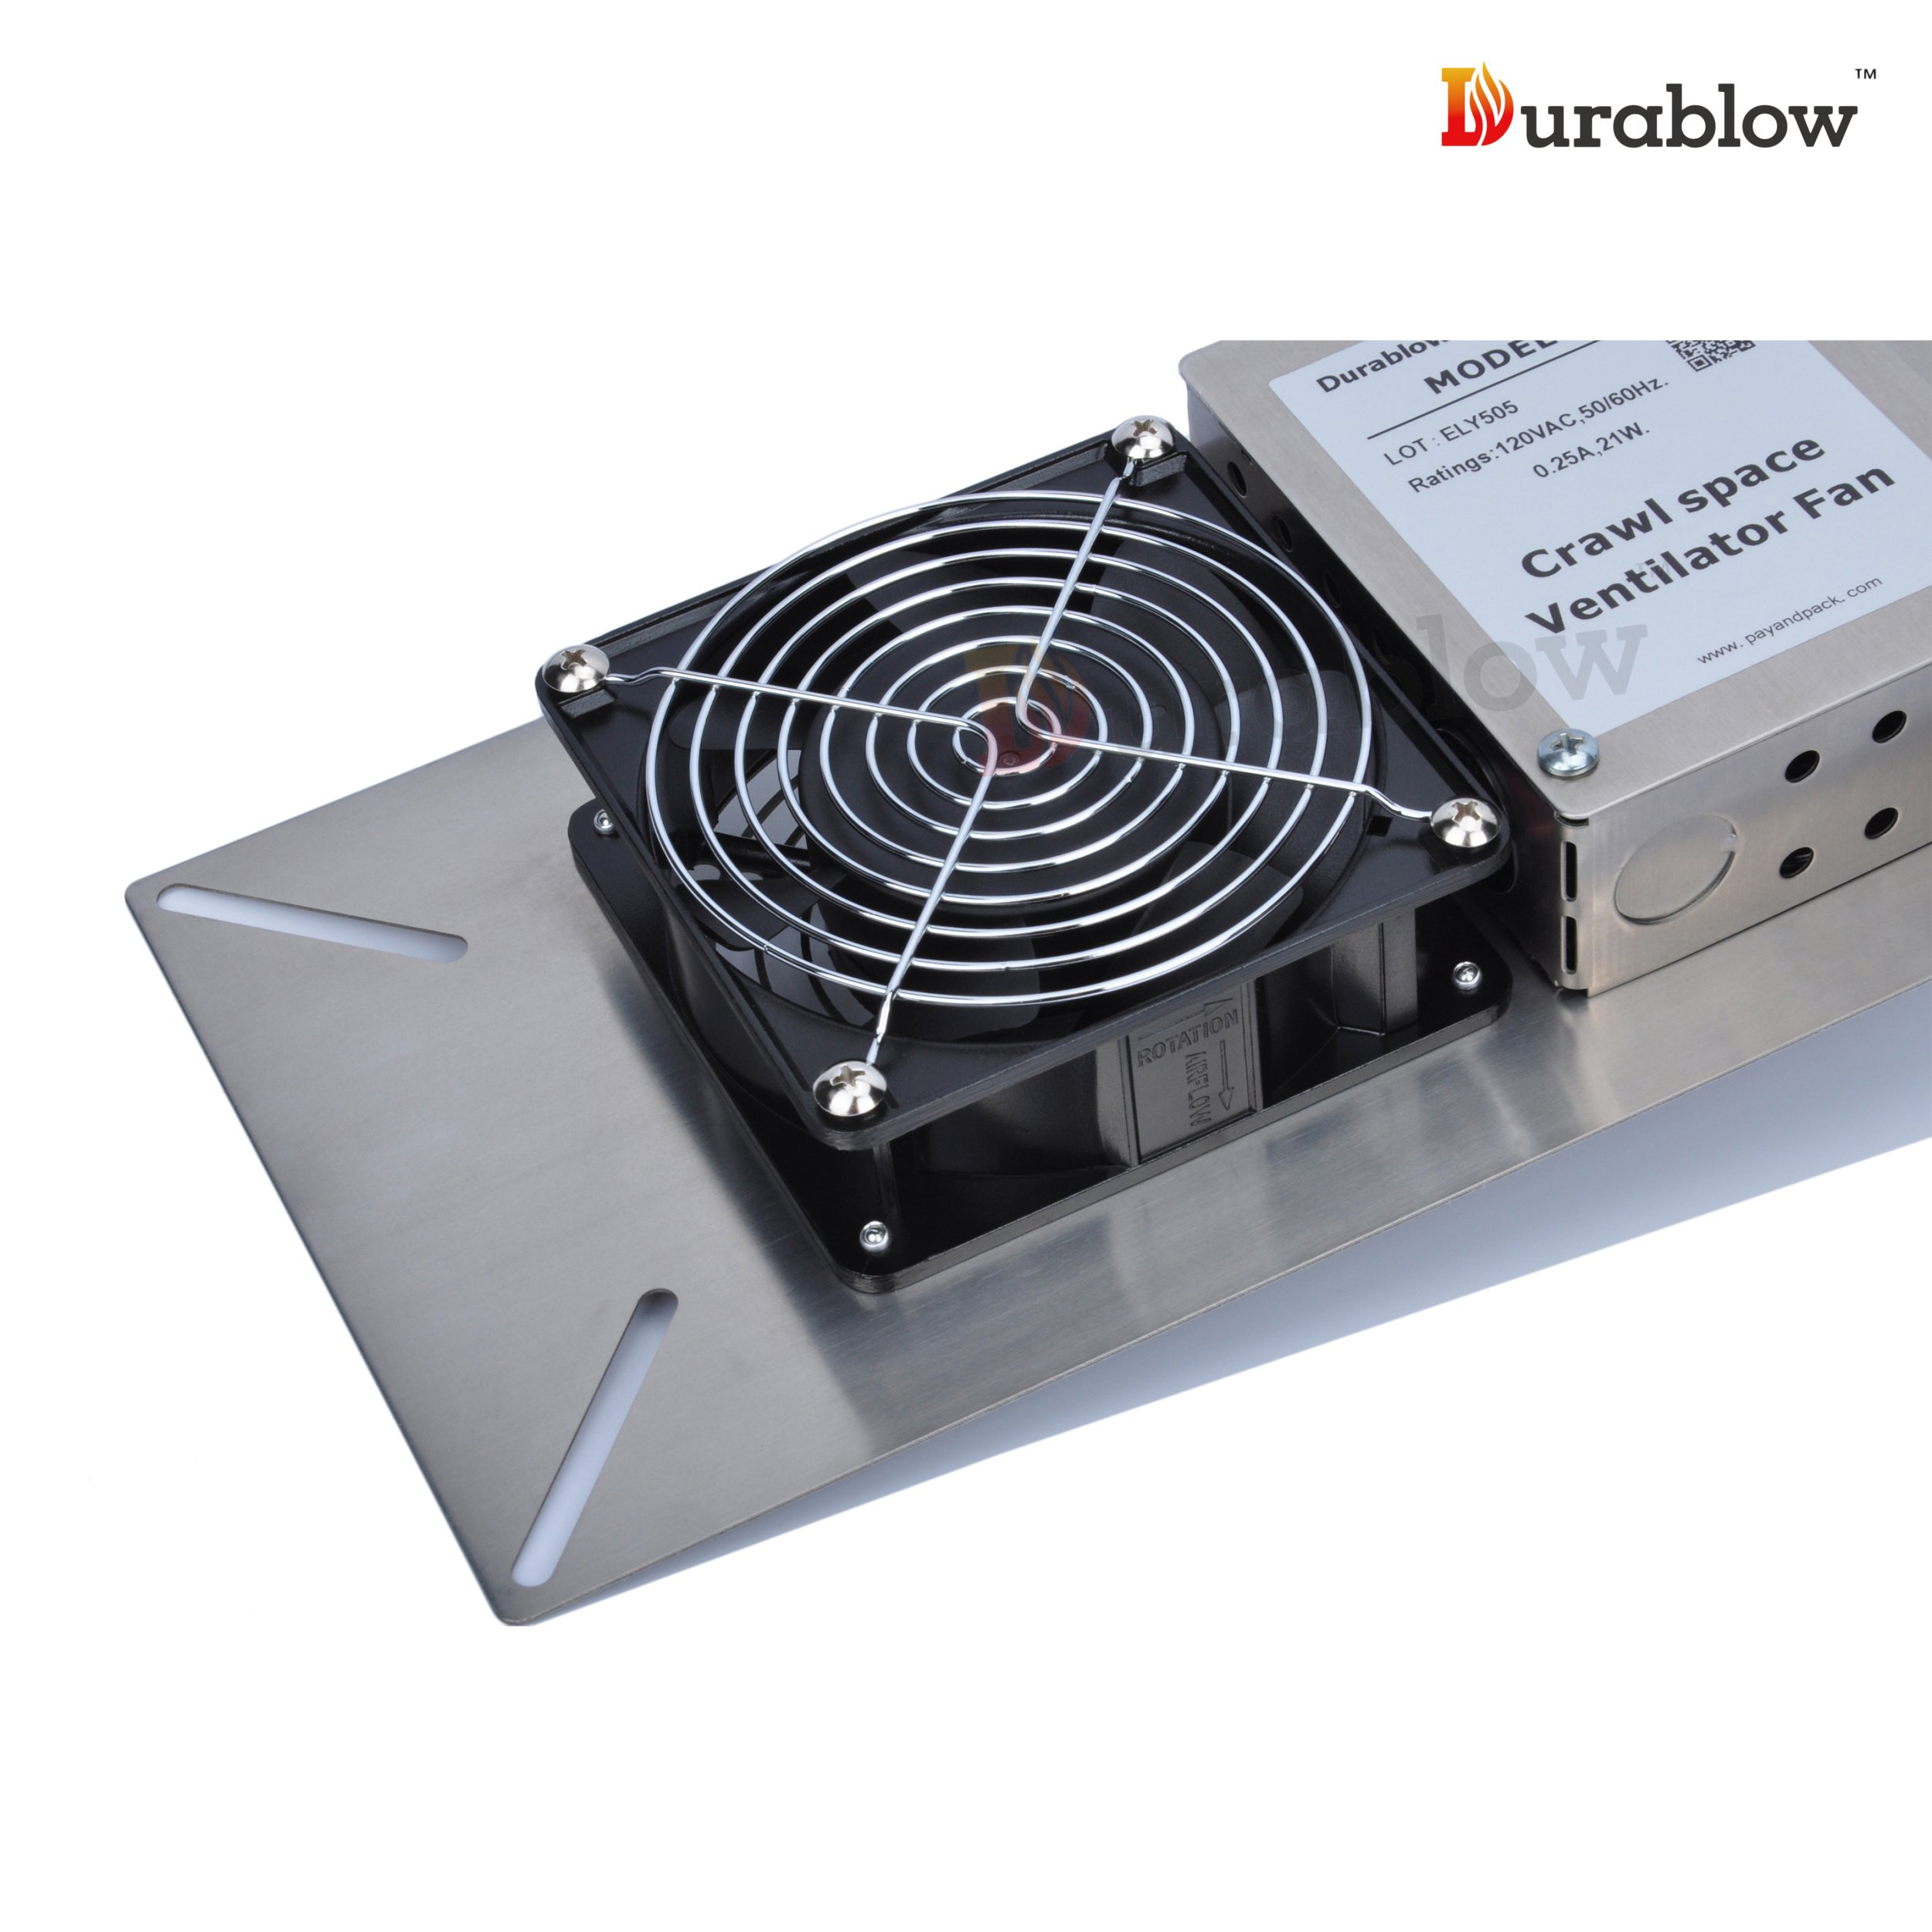 Durablow Stainless Steel 304 Crawl Space Foundation Fan Ventilator MFB M1 by Durablow (Image #3)